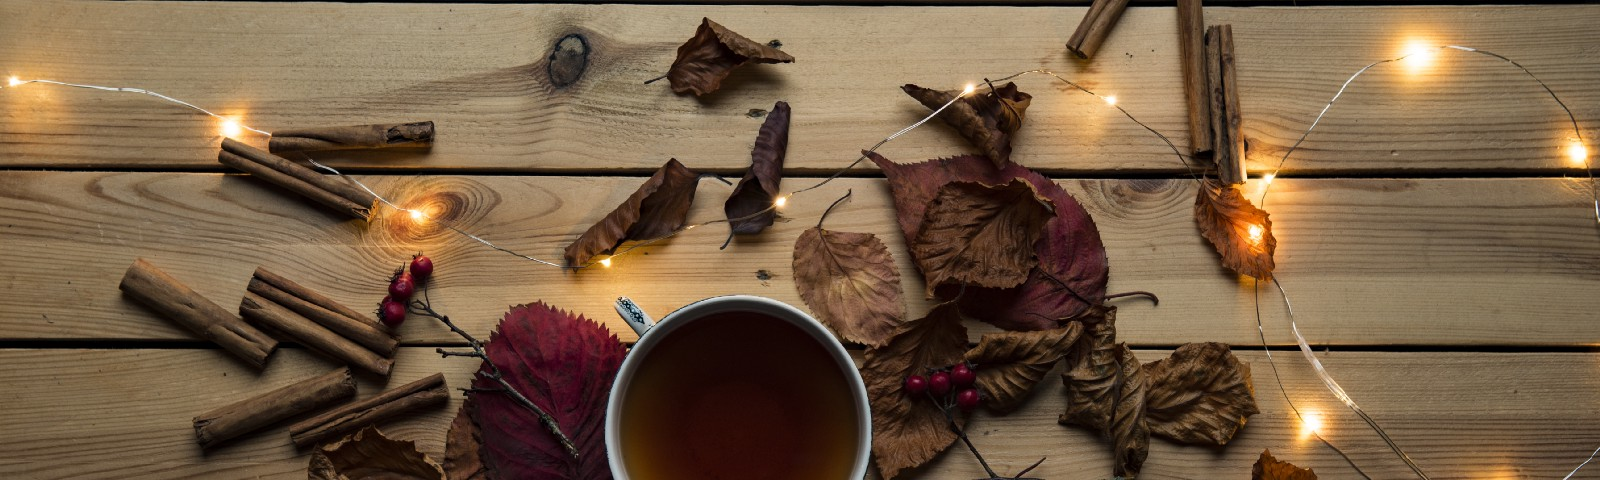 A cup of tea on a wood table, surrounded by dried leaves, sticks, and lights on a string